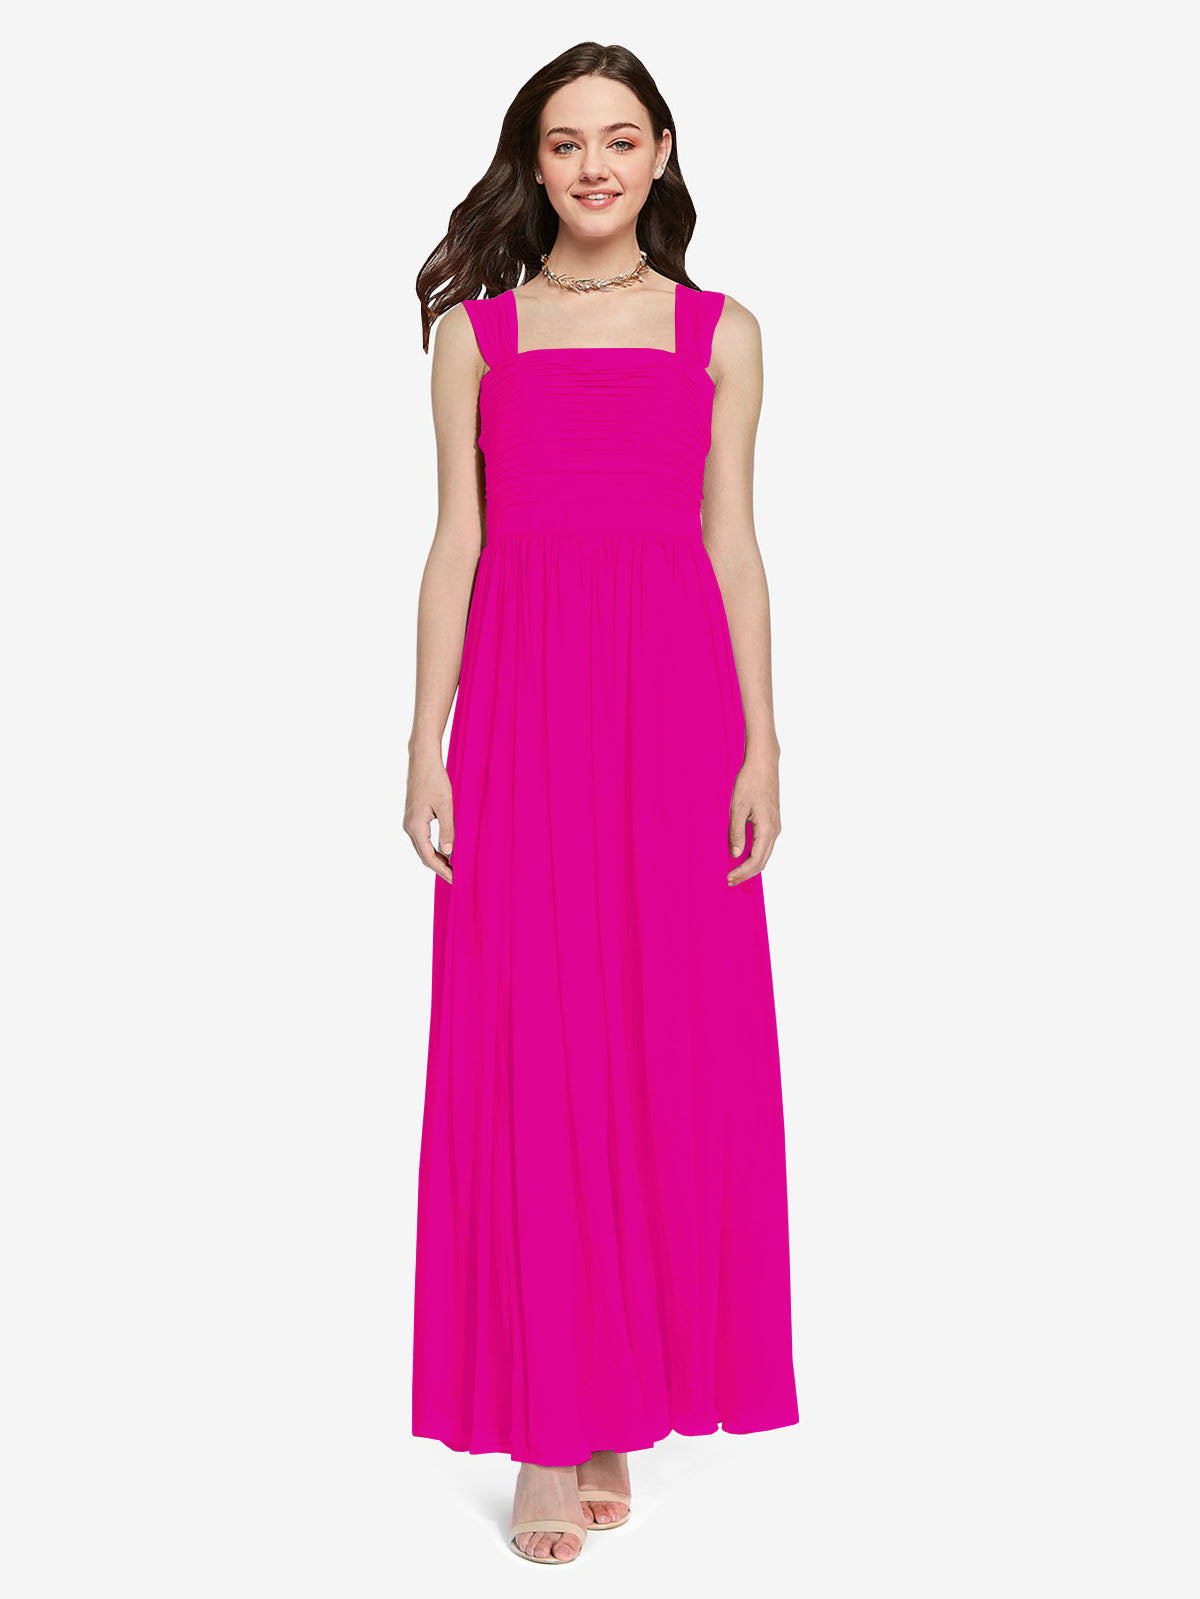 Long A-Line Square Sleeveless Fuchsia Chiffon Bridesmaid Dress Aldridge